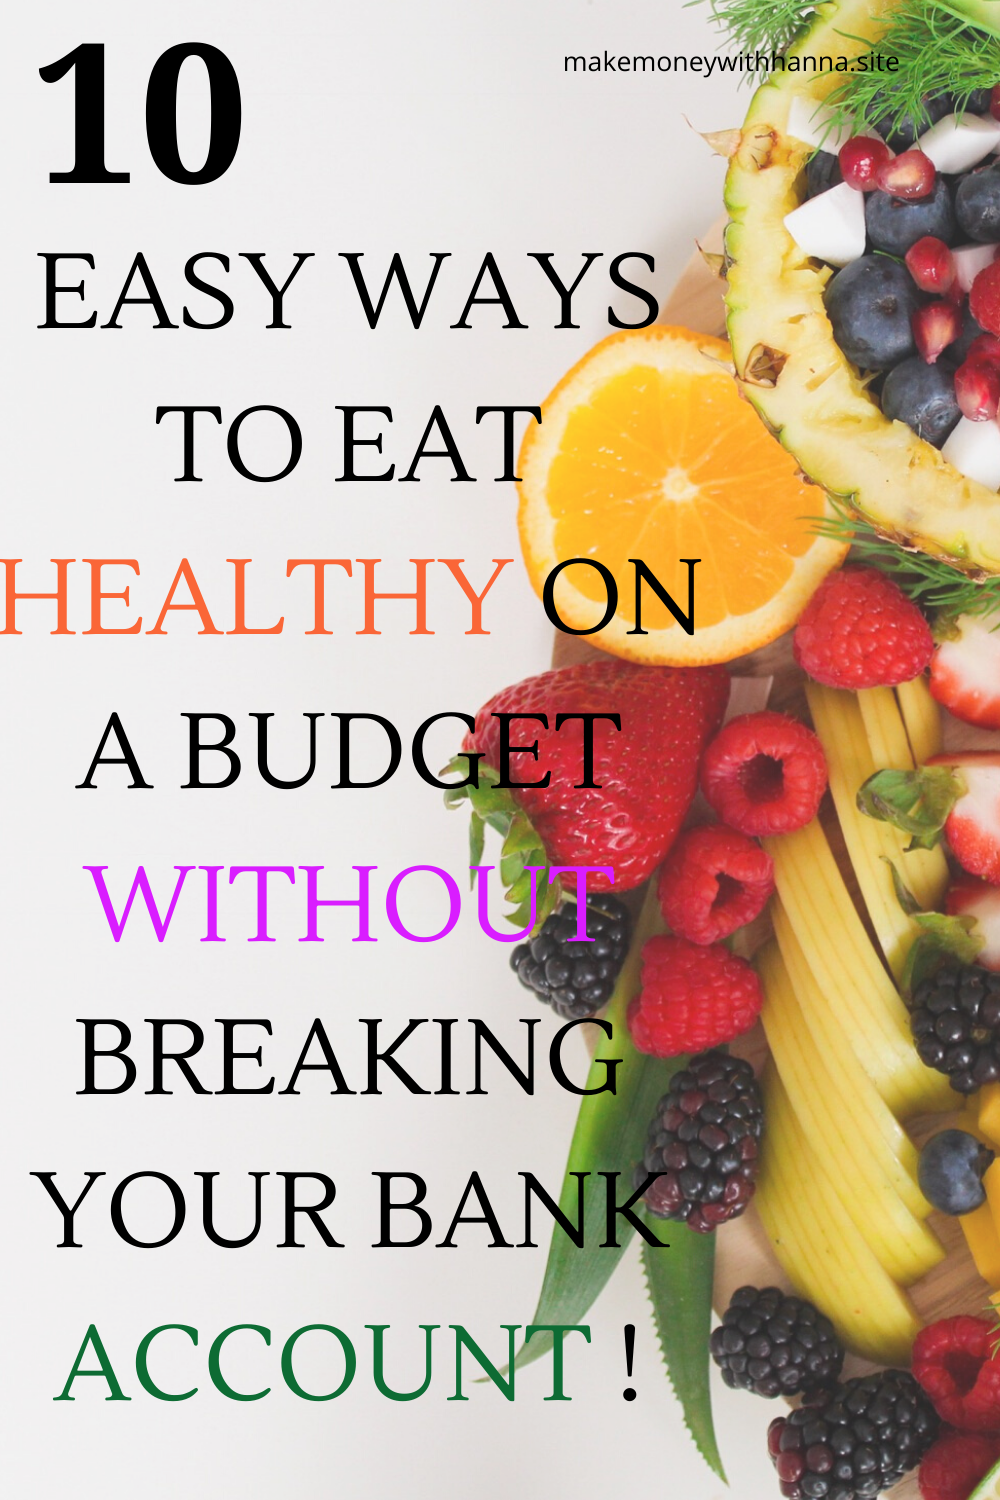 10 Easy Ways To Eat Healthy On A Budget In 2020 Ways To Eat Healthy Healthy Eating Healthy